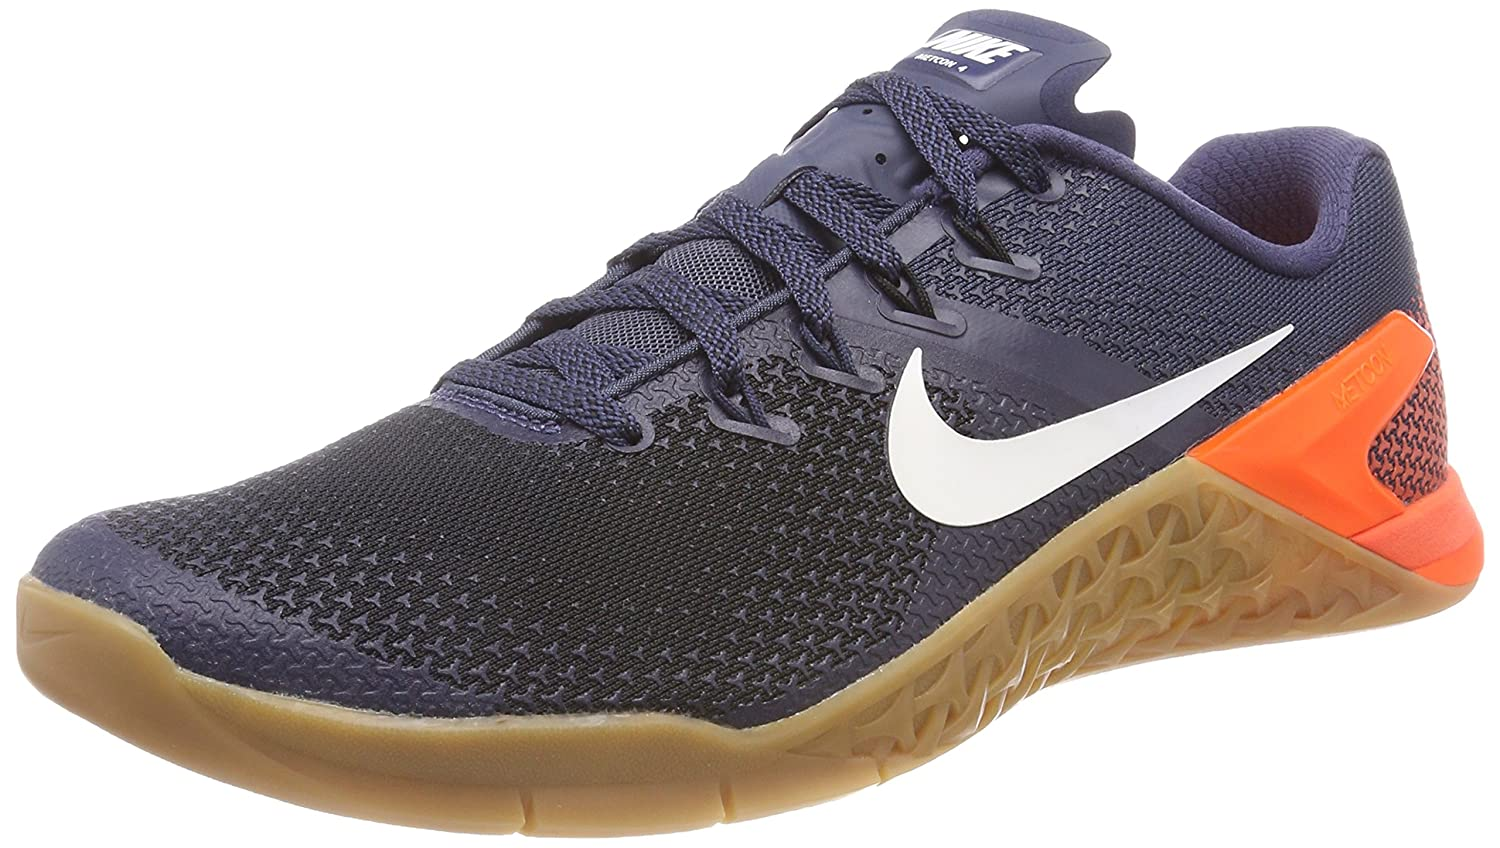 NIKE Men's Metcon 4 Training Shoes B072C2RNZN 7.5 D(M) US|Thunder Blue/Black/Hyper Crimson/White